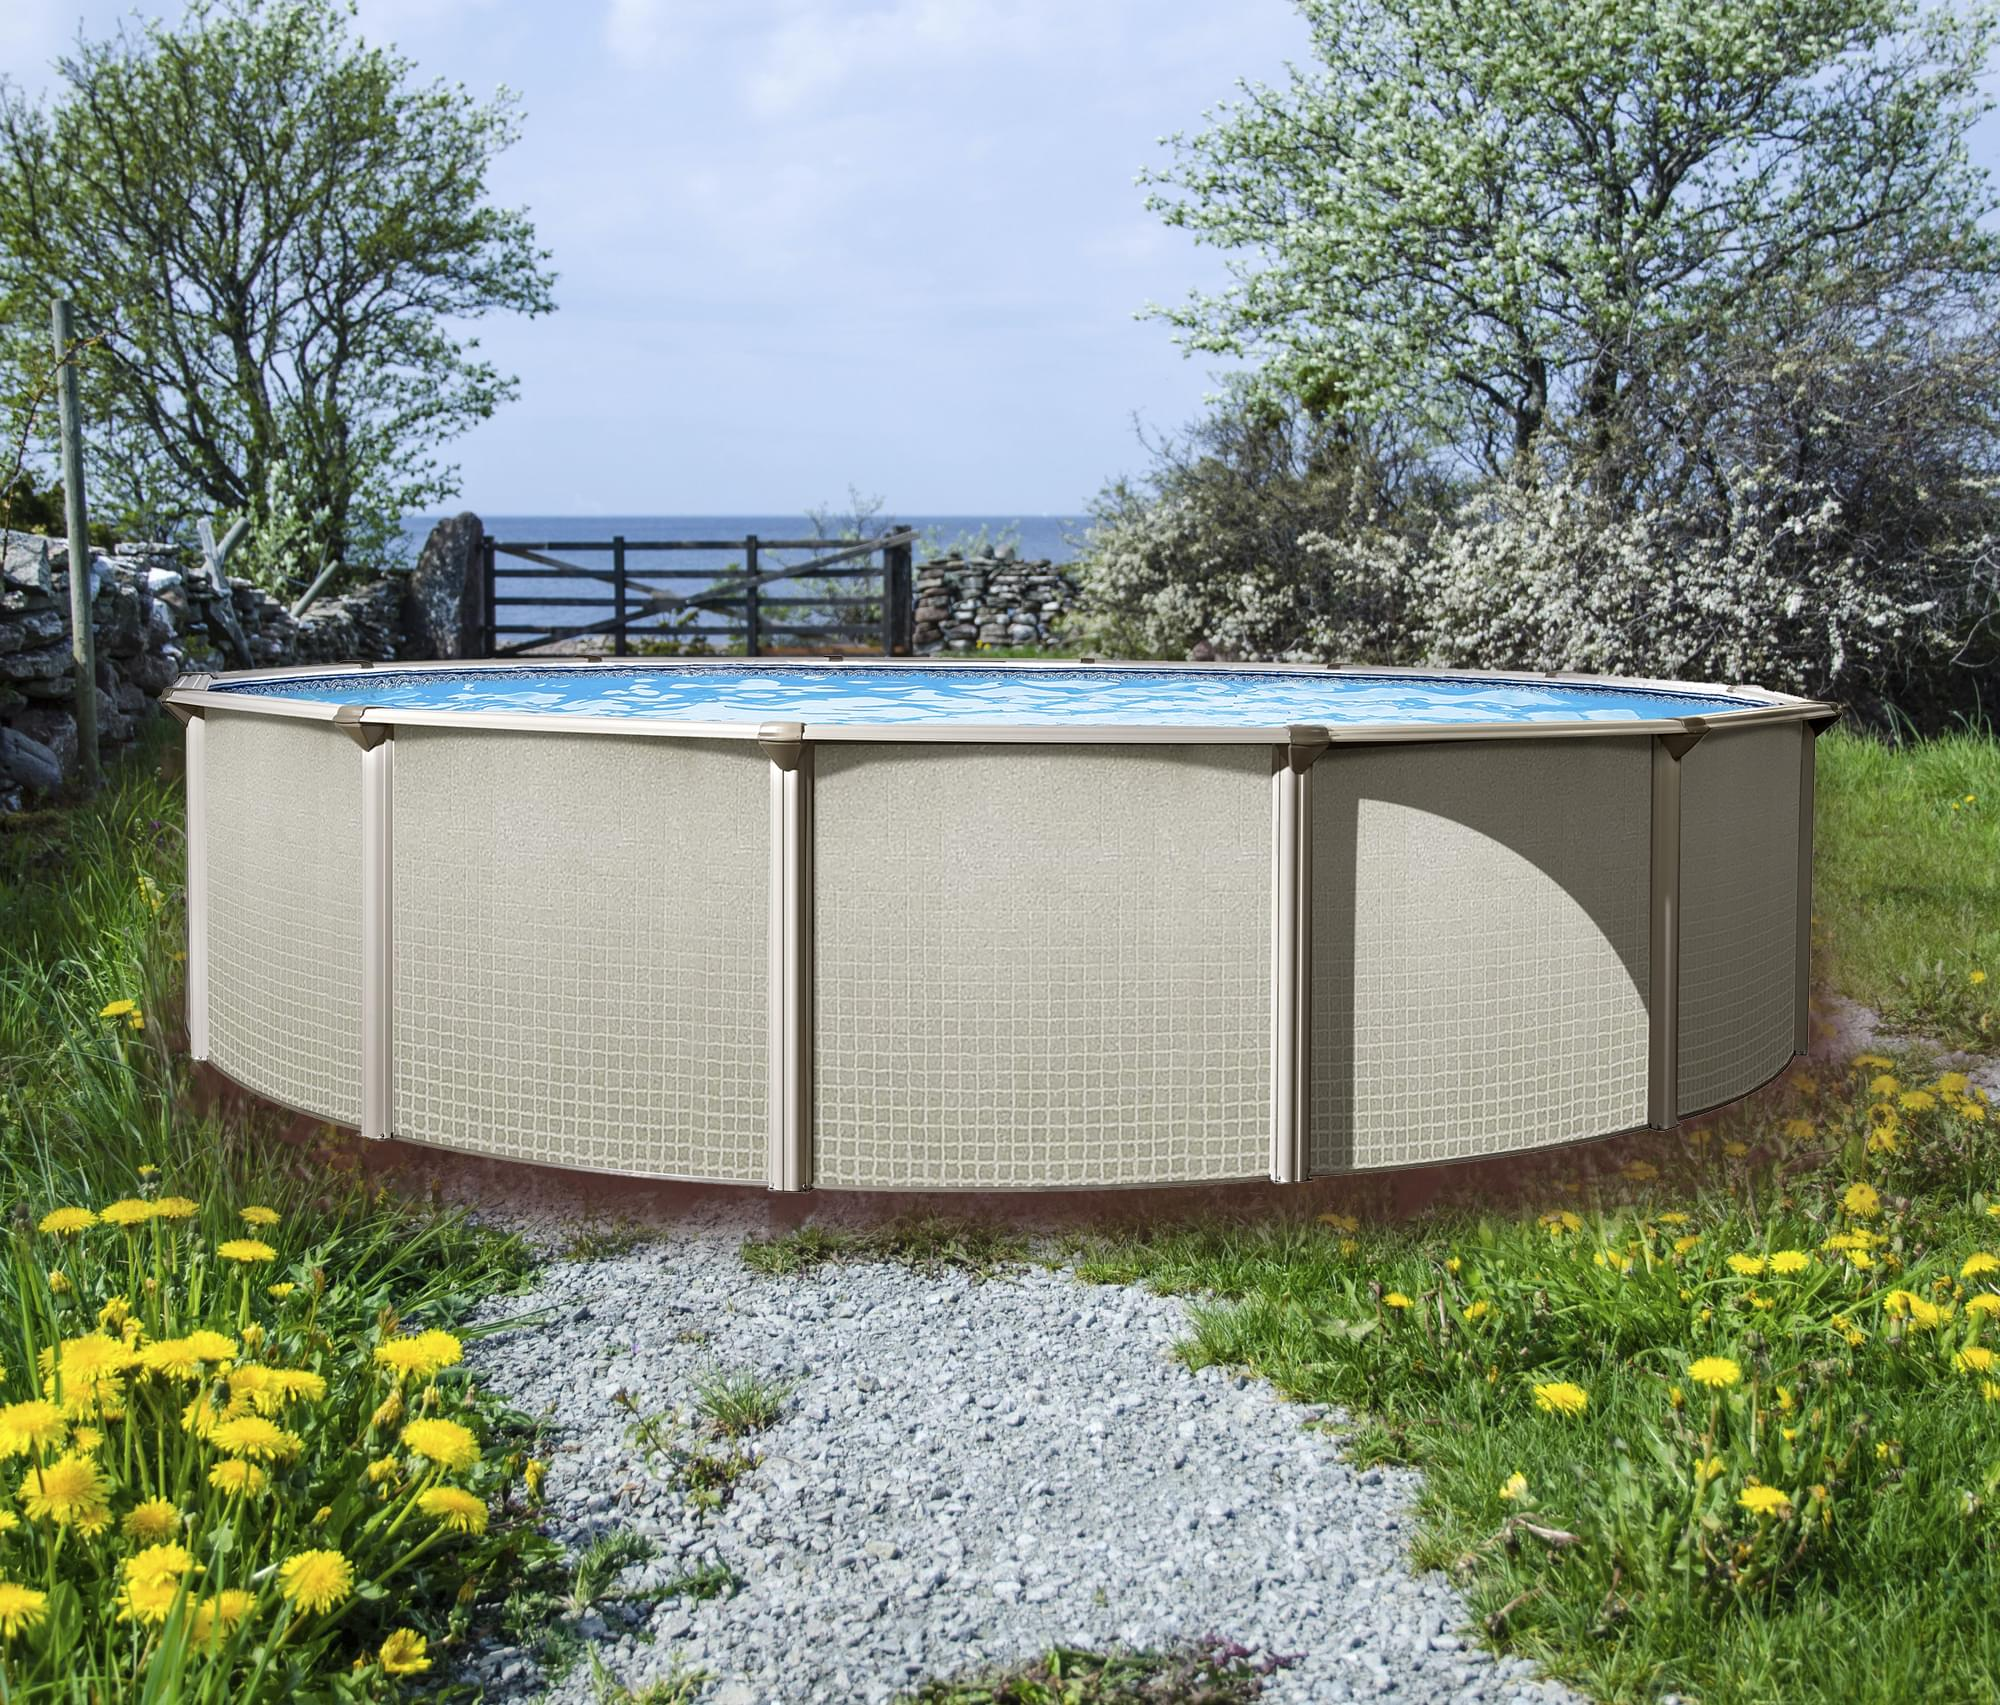 Evolution 27 ft round above ground pool for Piscine hors terre design